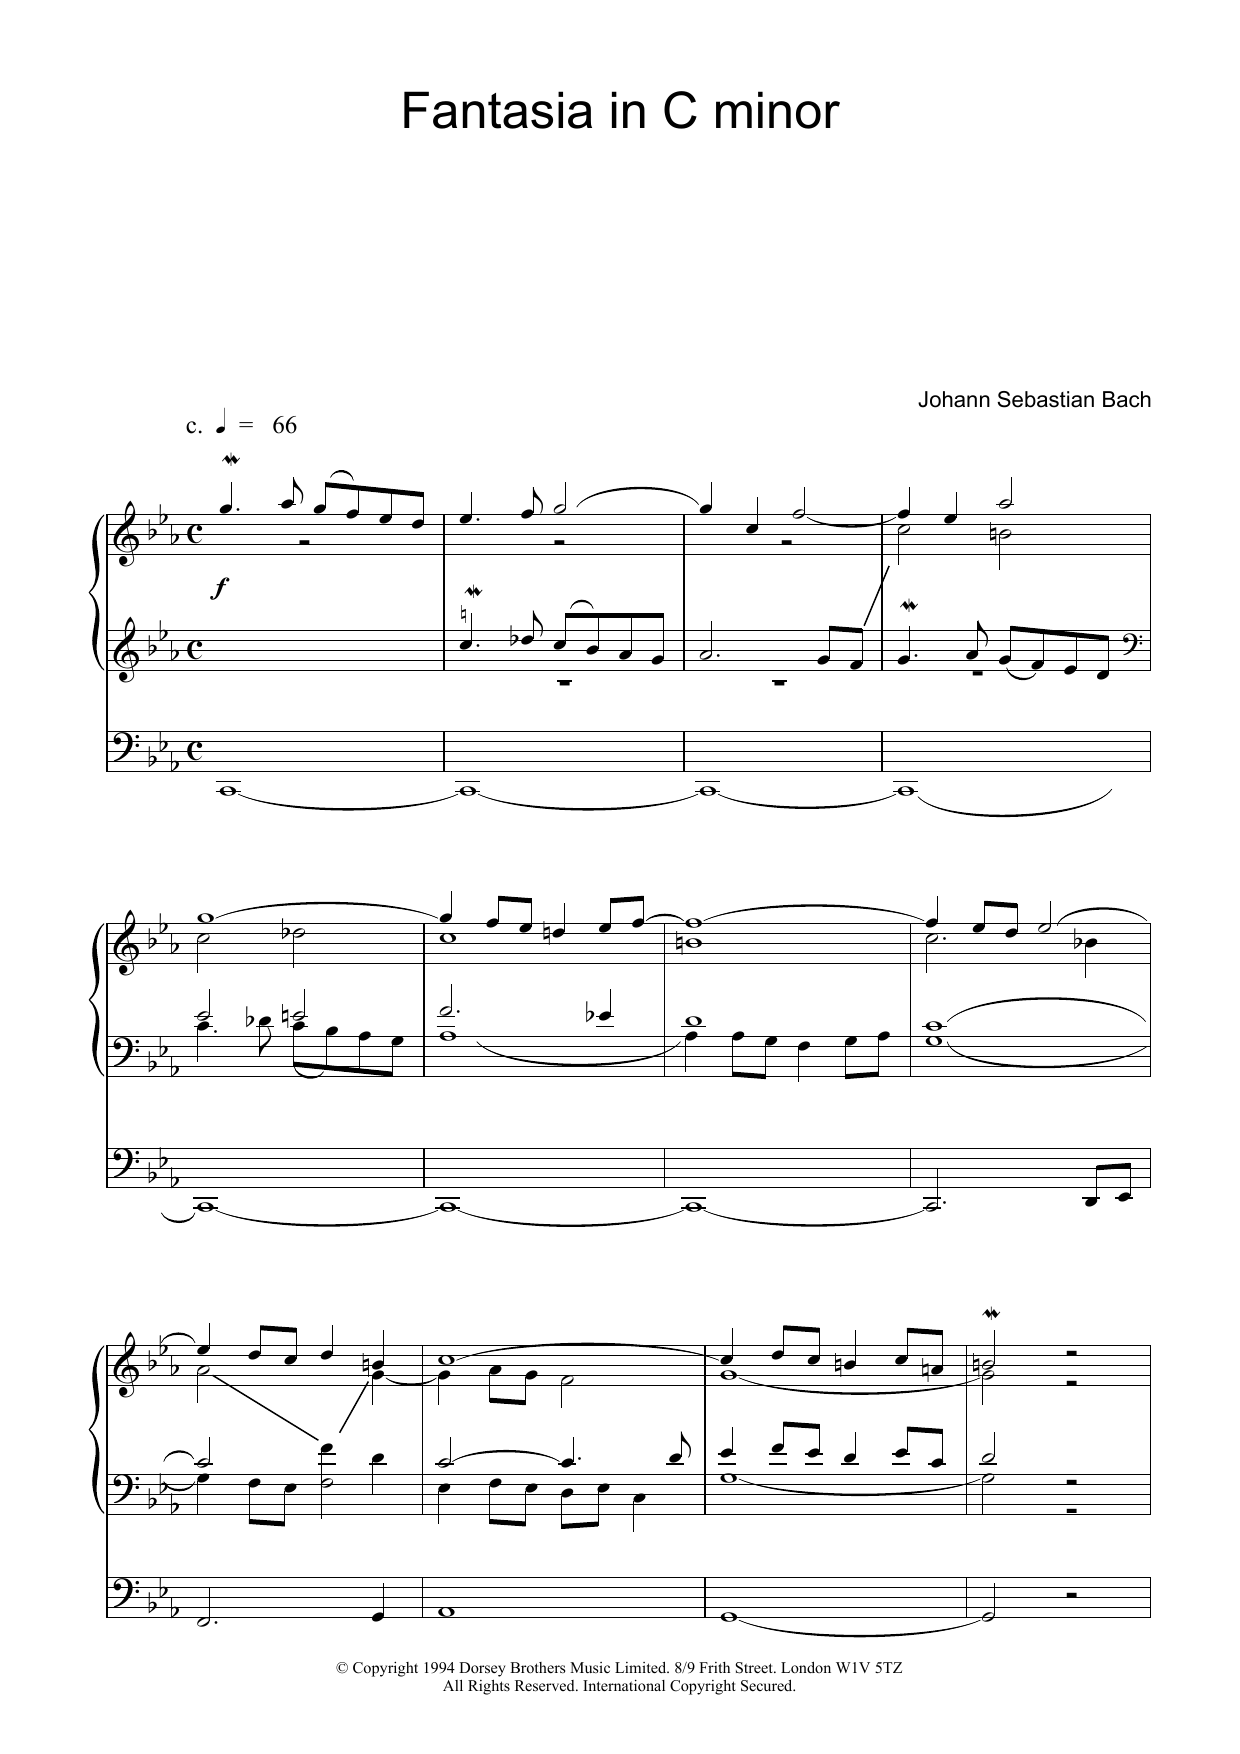 Fantasia and Fugue in C Minor, BWV 537 Sheet Music